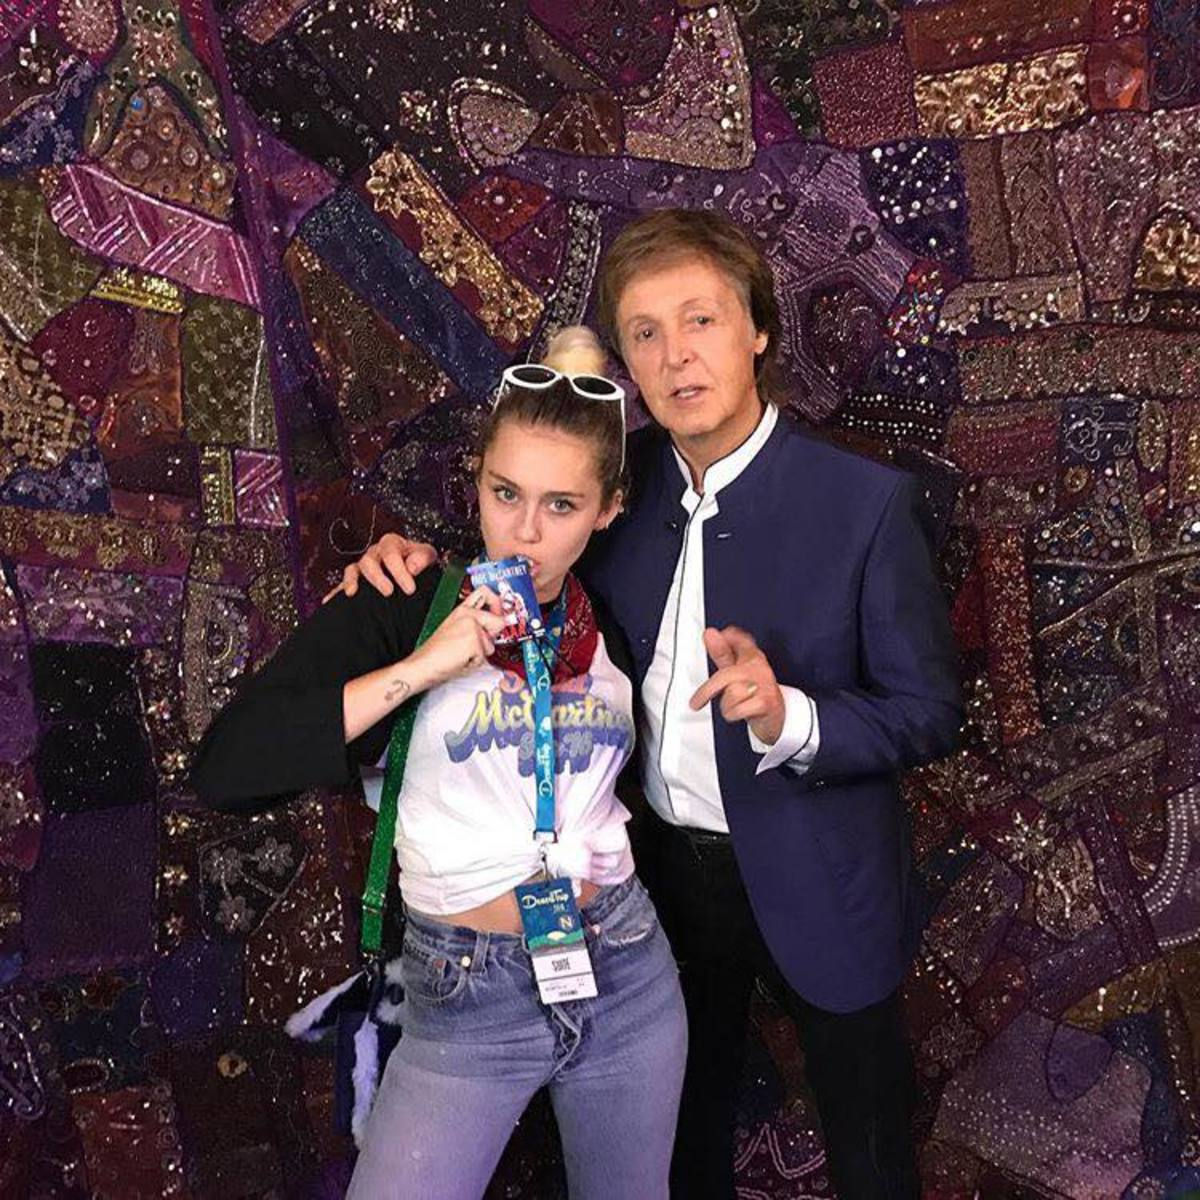 Miley and Sir Paul